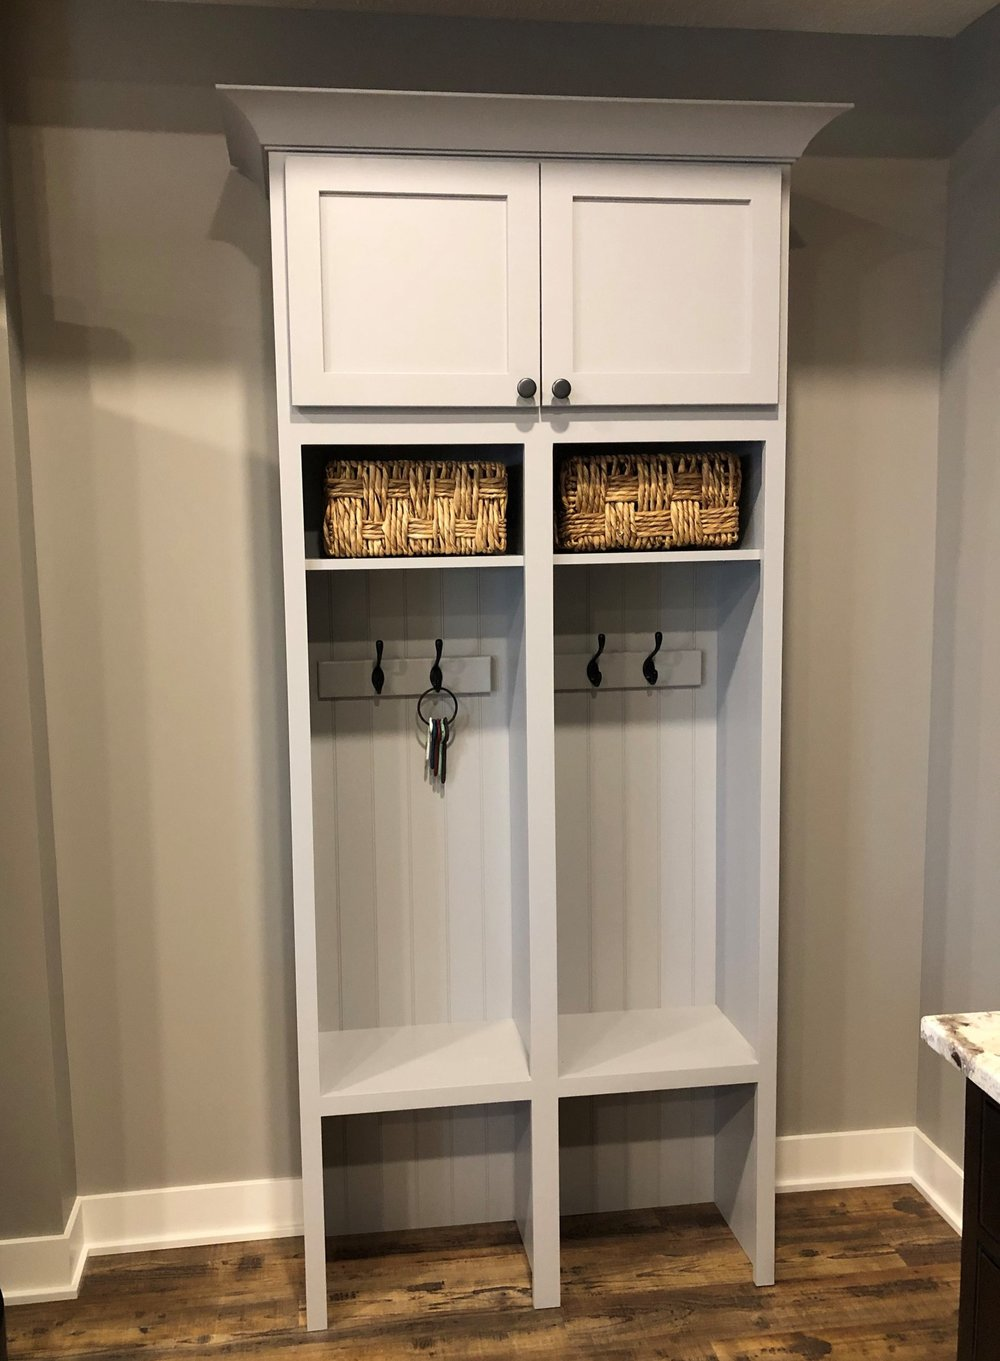 Lockers - StarMark Cabinetry - Bedford door style in Maple finished with Frost tinted varnish